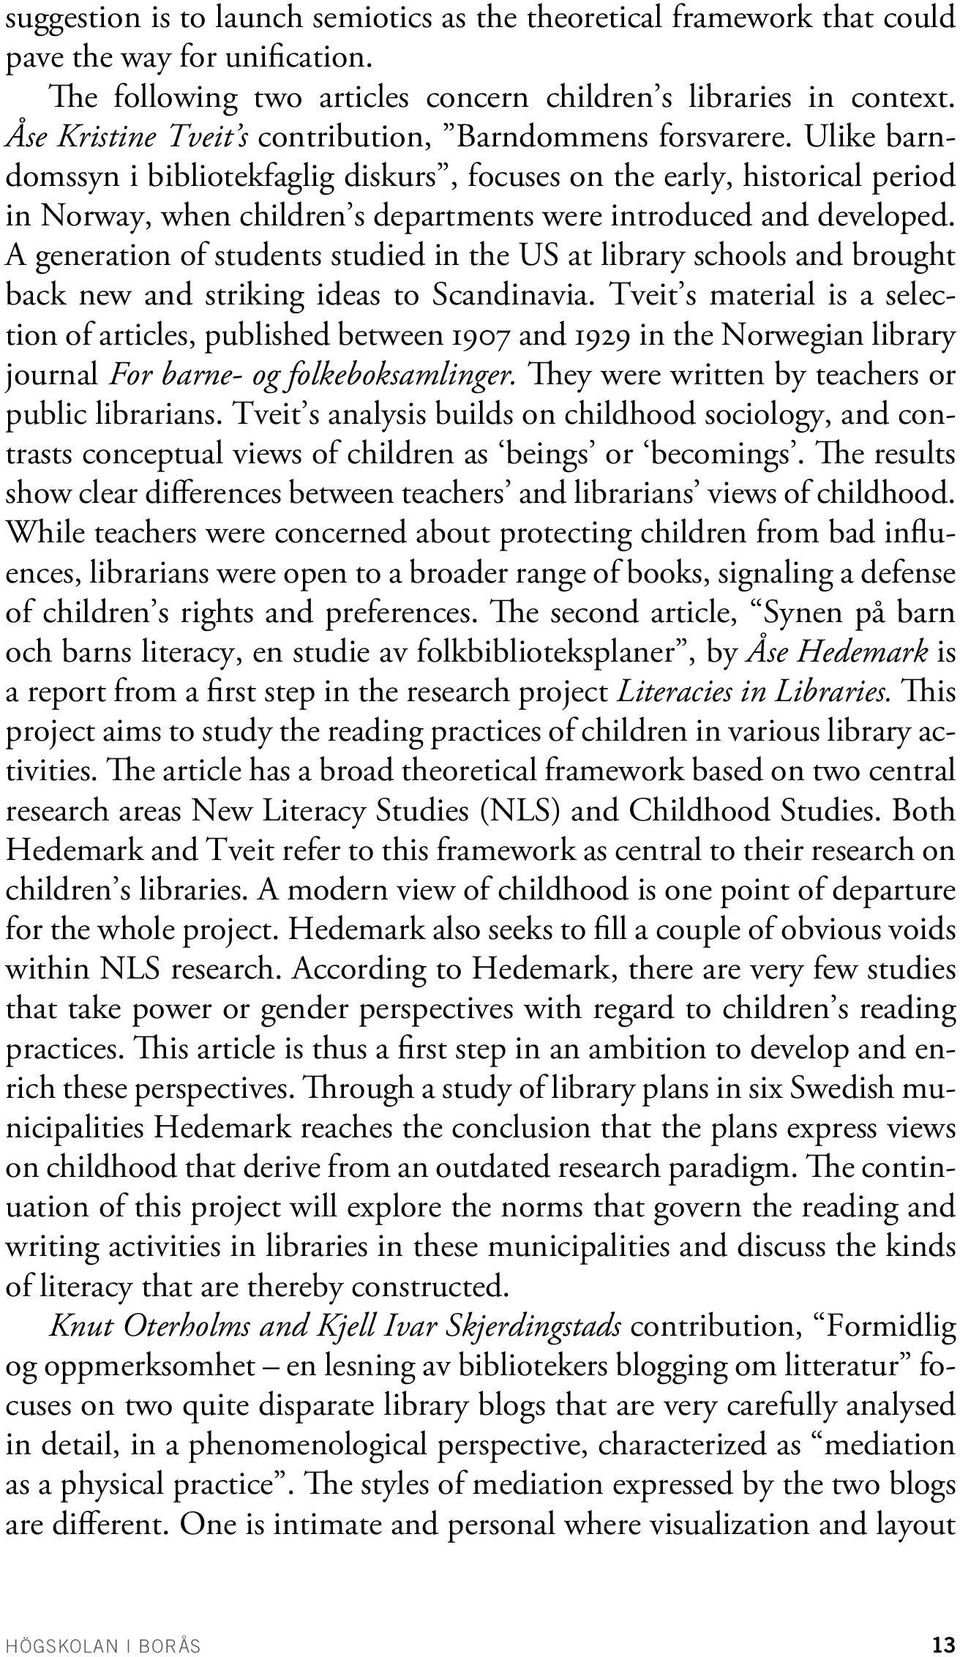 Ulike barndomssyn i bibliotekfaglig diskurs, focuses on the early, historical period in Norway, when children s departments were introduced and developed.